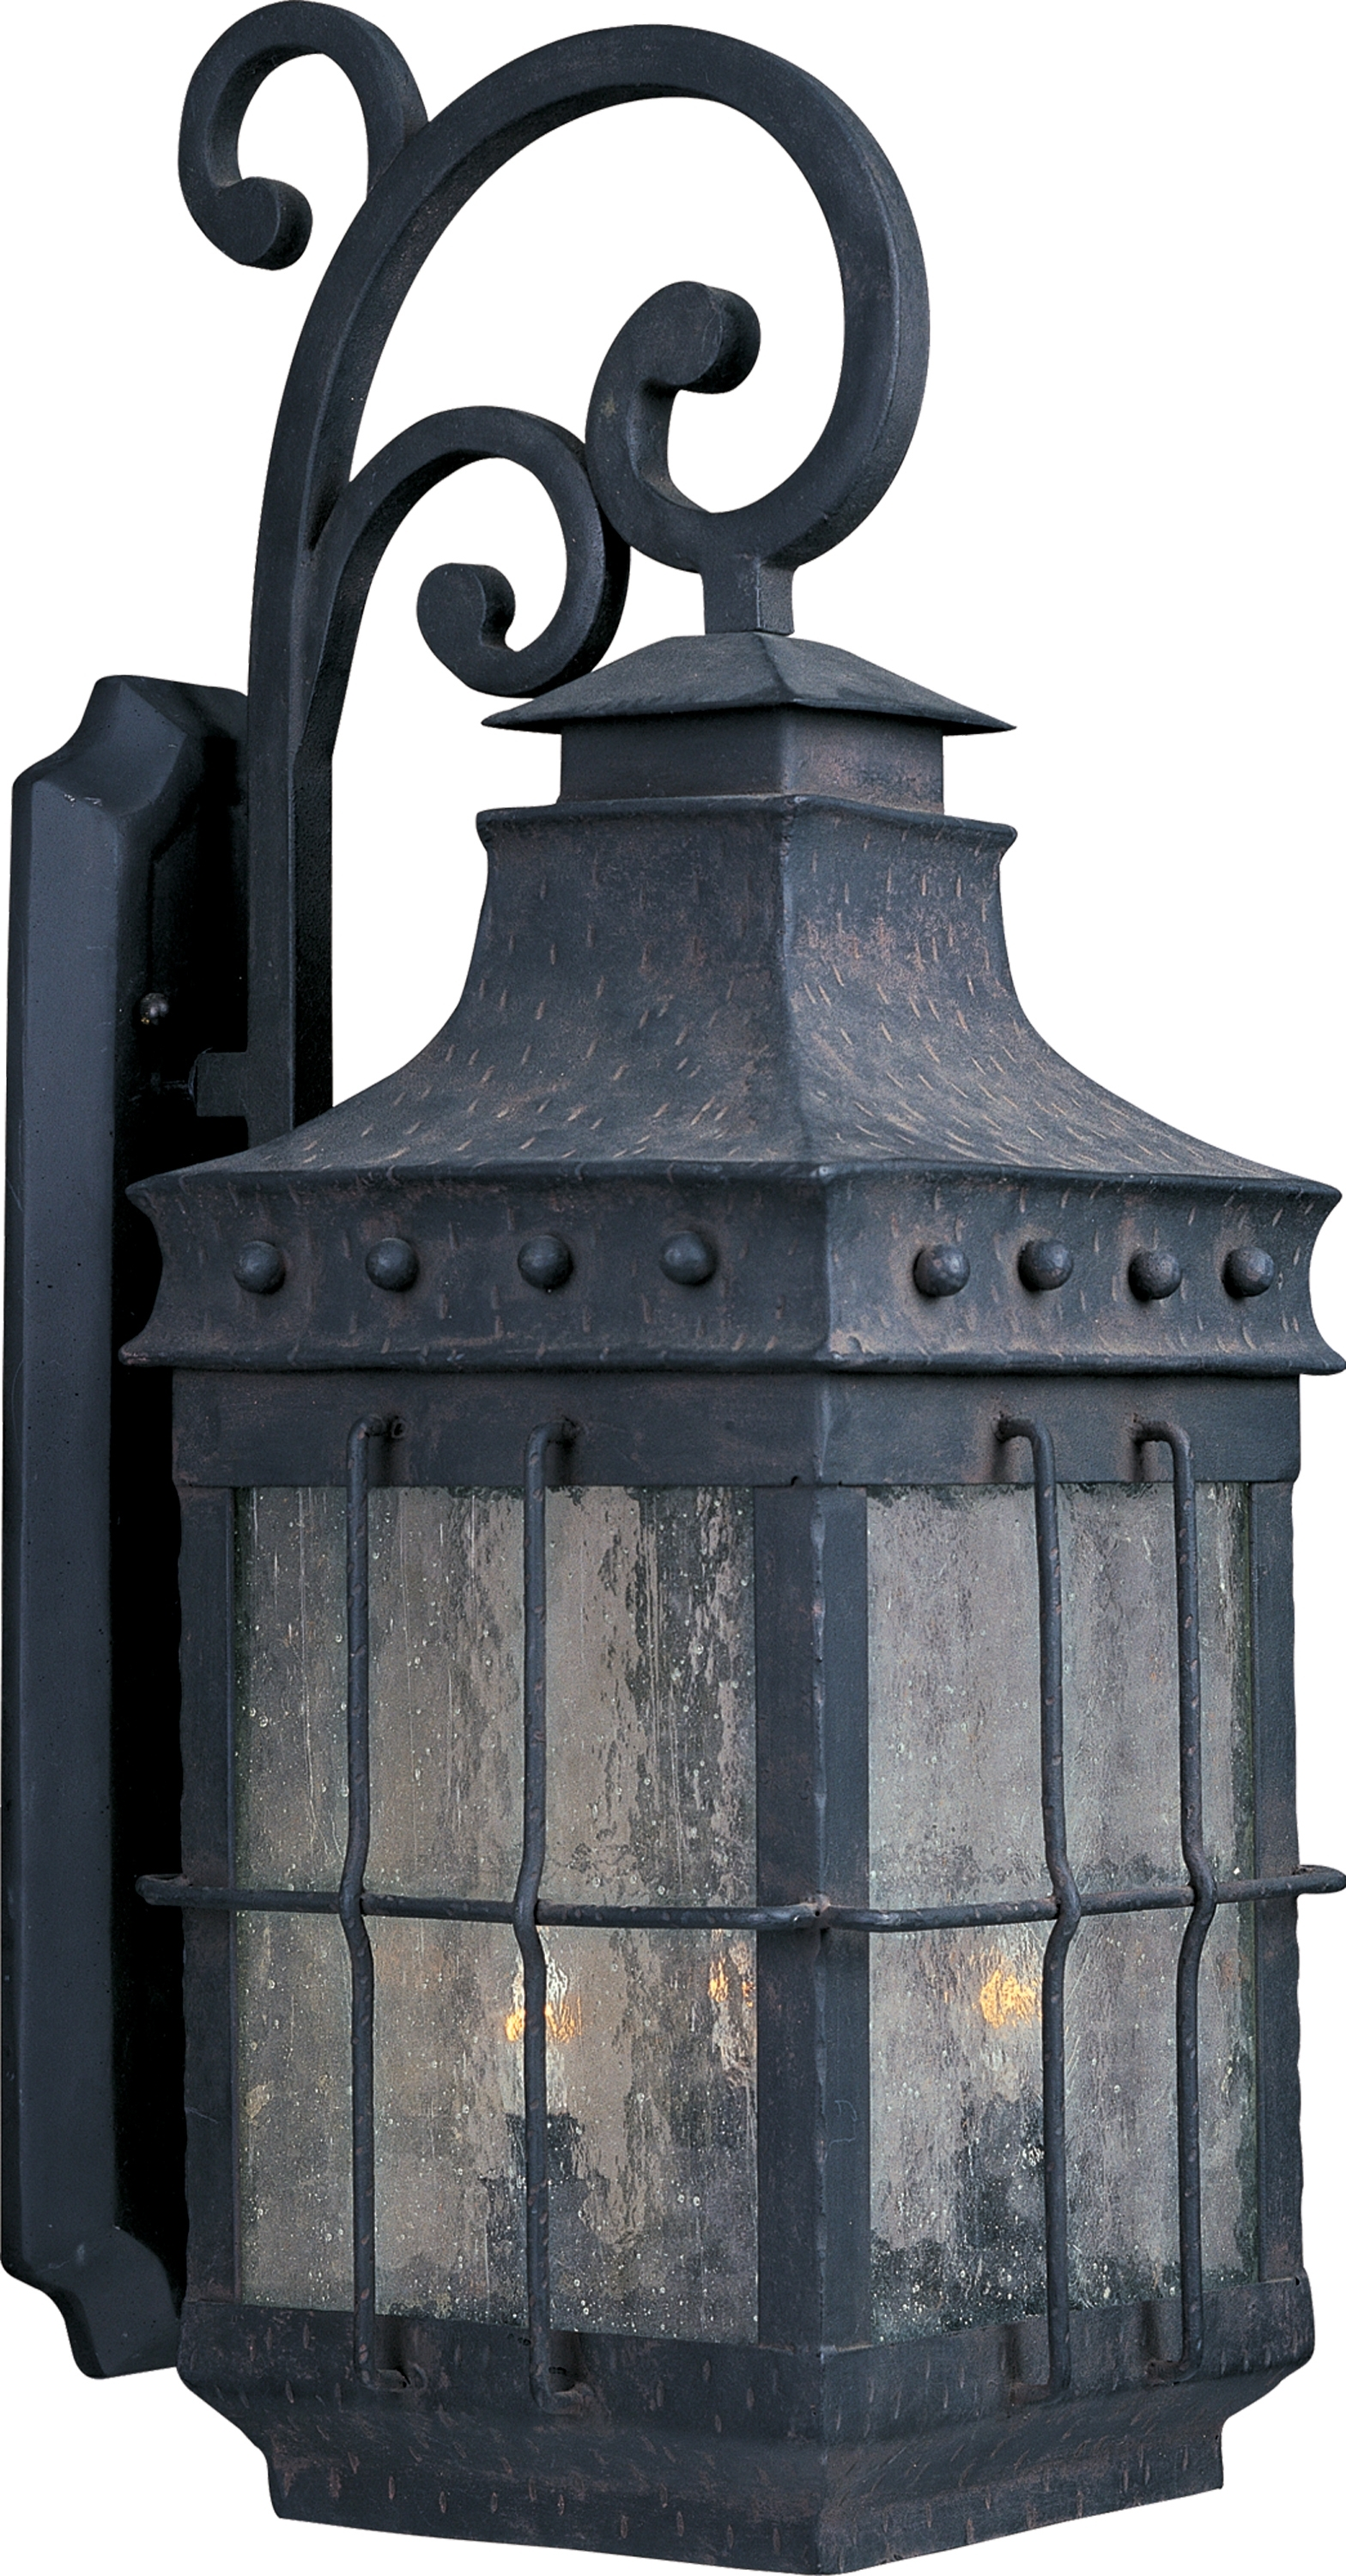 Nantucket Outdoor Lanterns For Latest Nantucket 4 Light Outdoor Wall Lantern (View 11 of 20)